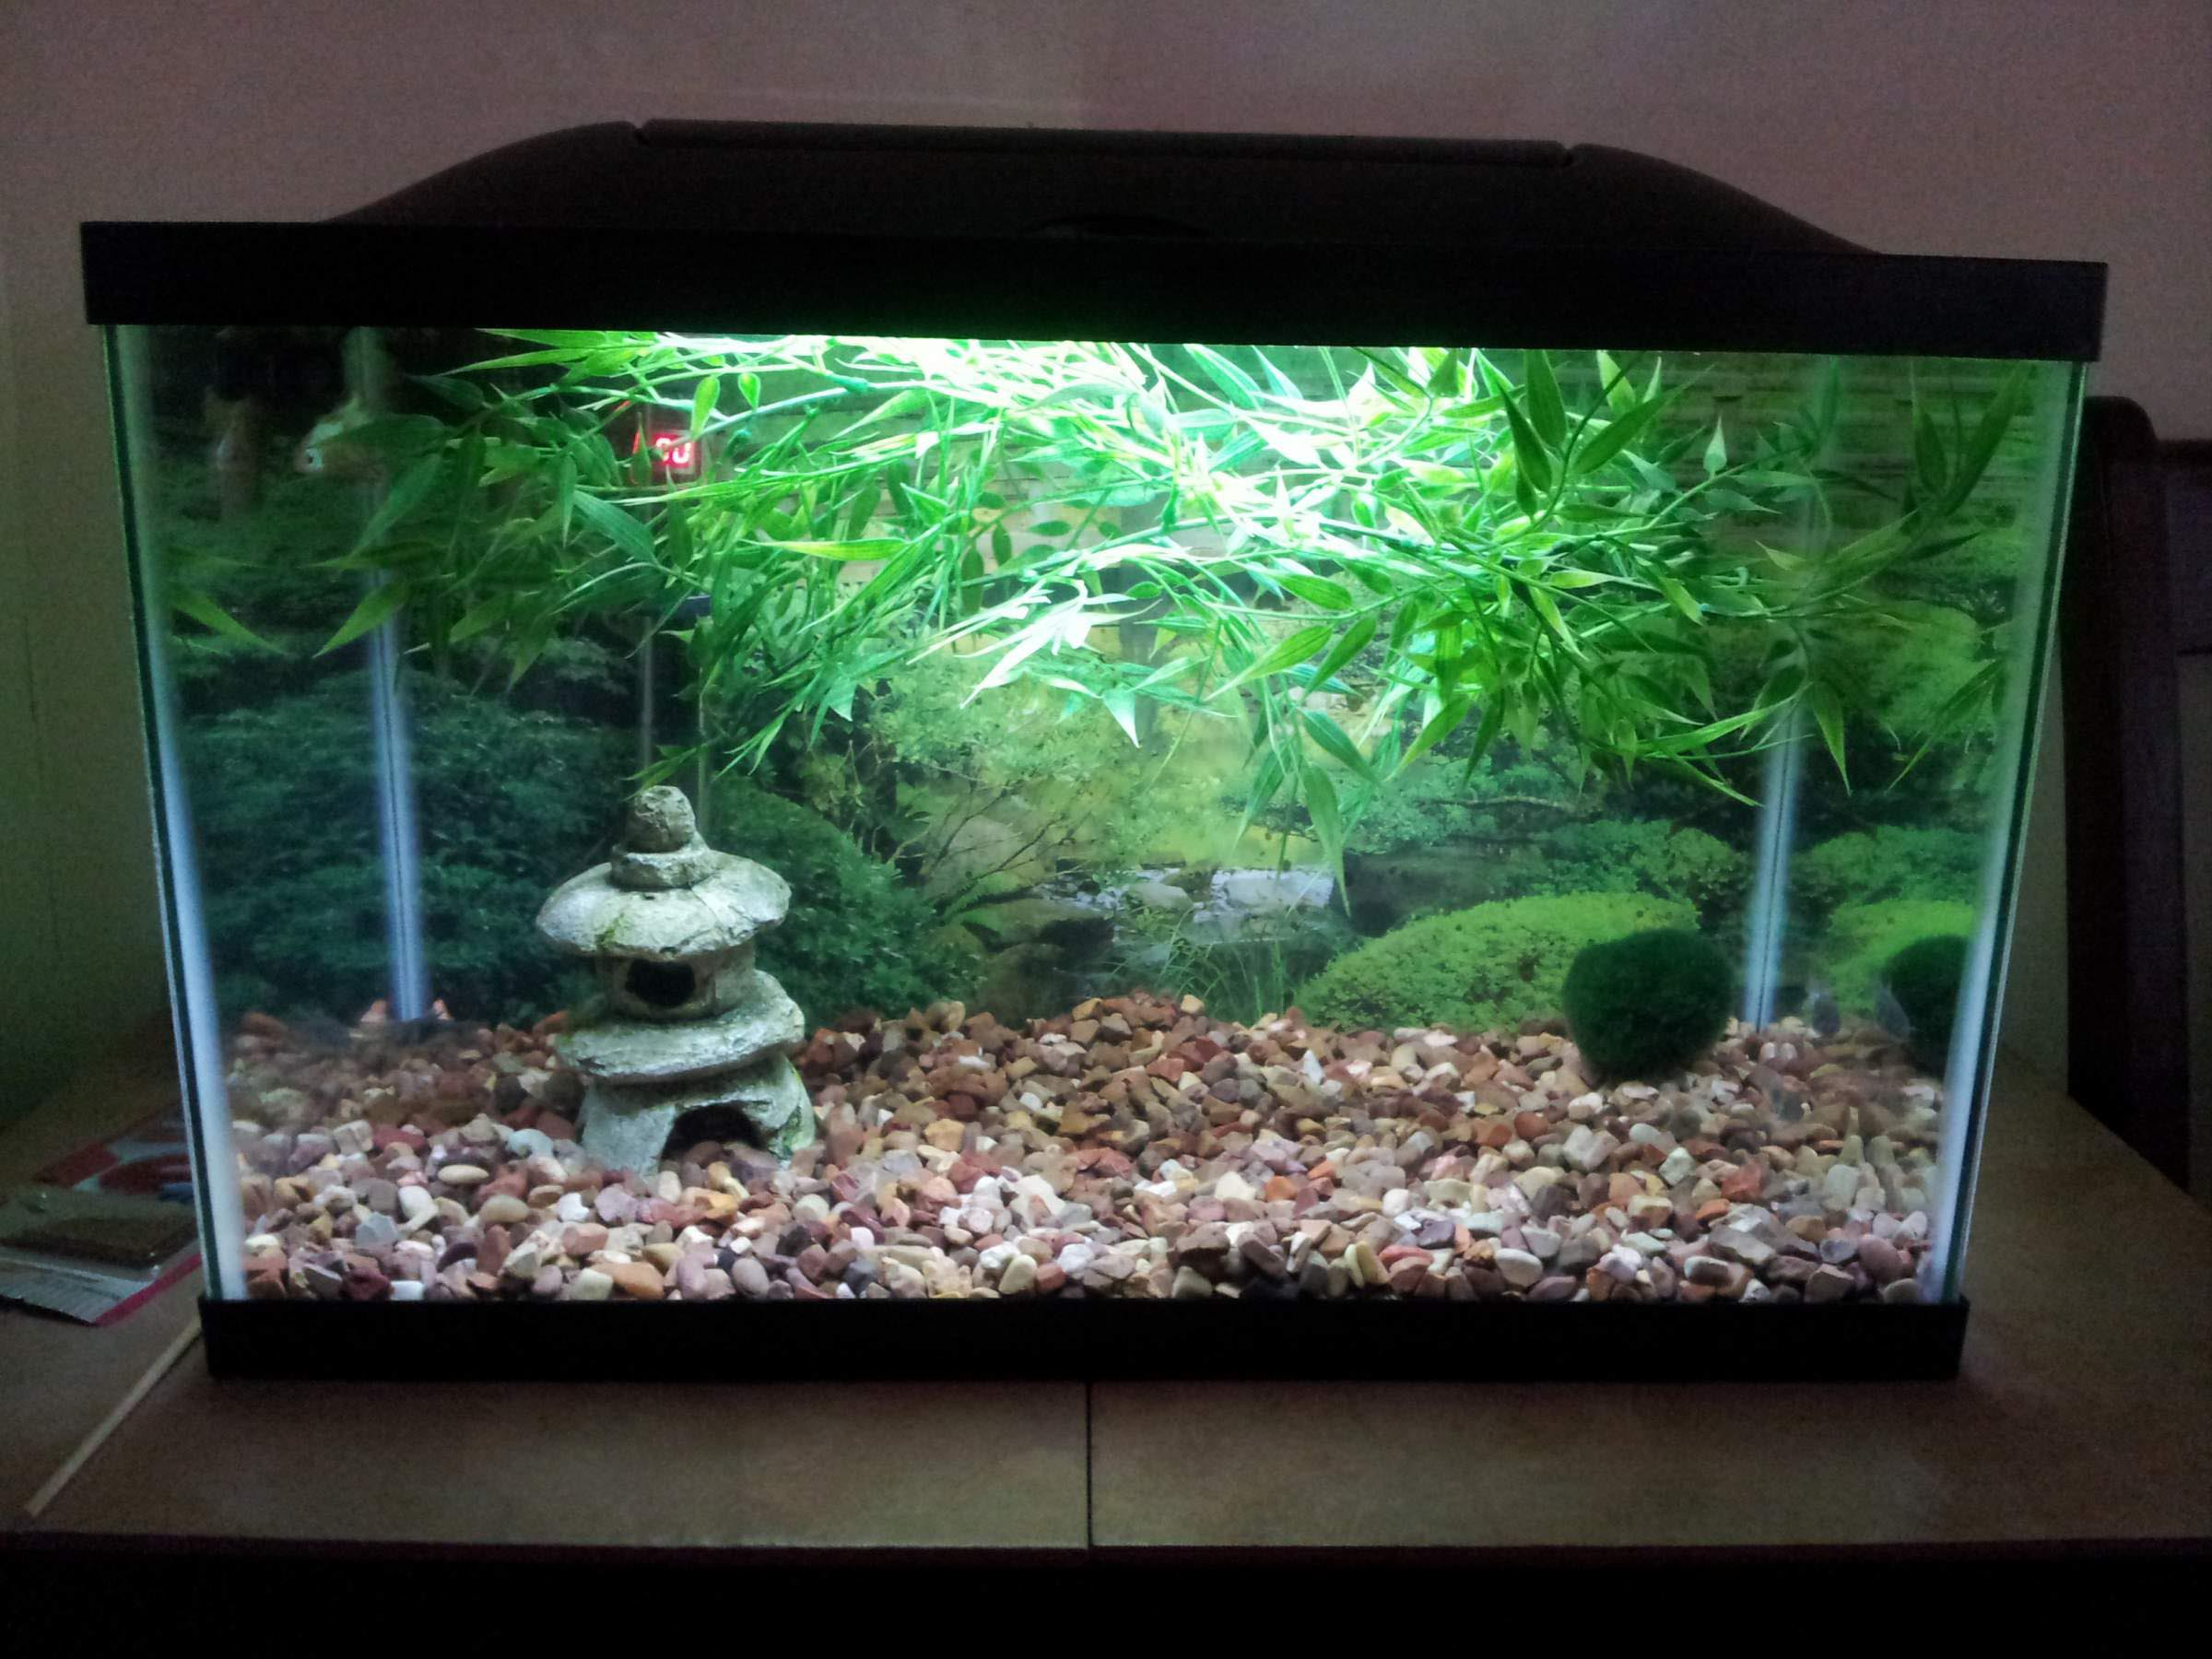 Asian fish aquarium decor aquarium design ideas for Aquarium decoration idea